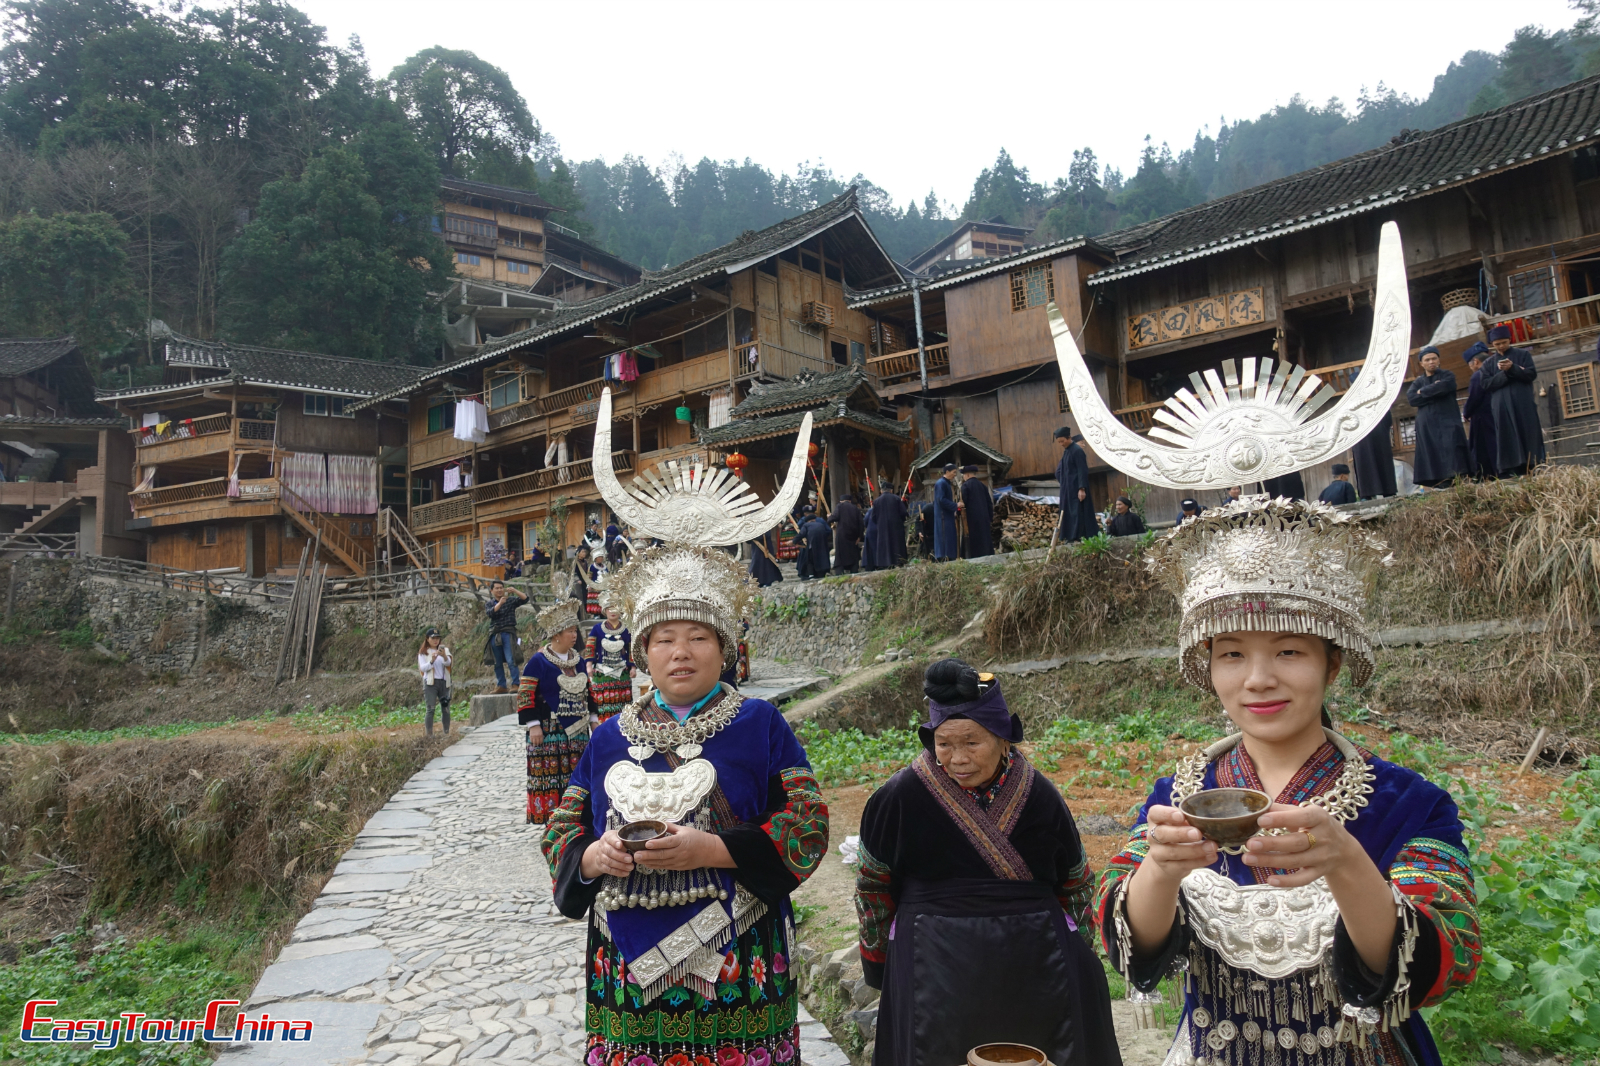 Ian's Spring Festival Tour in Guizhou with ETC Group